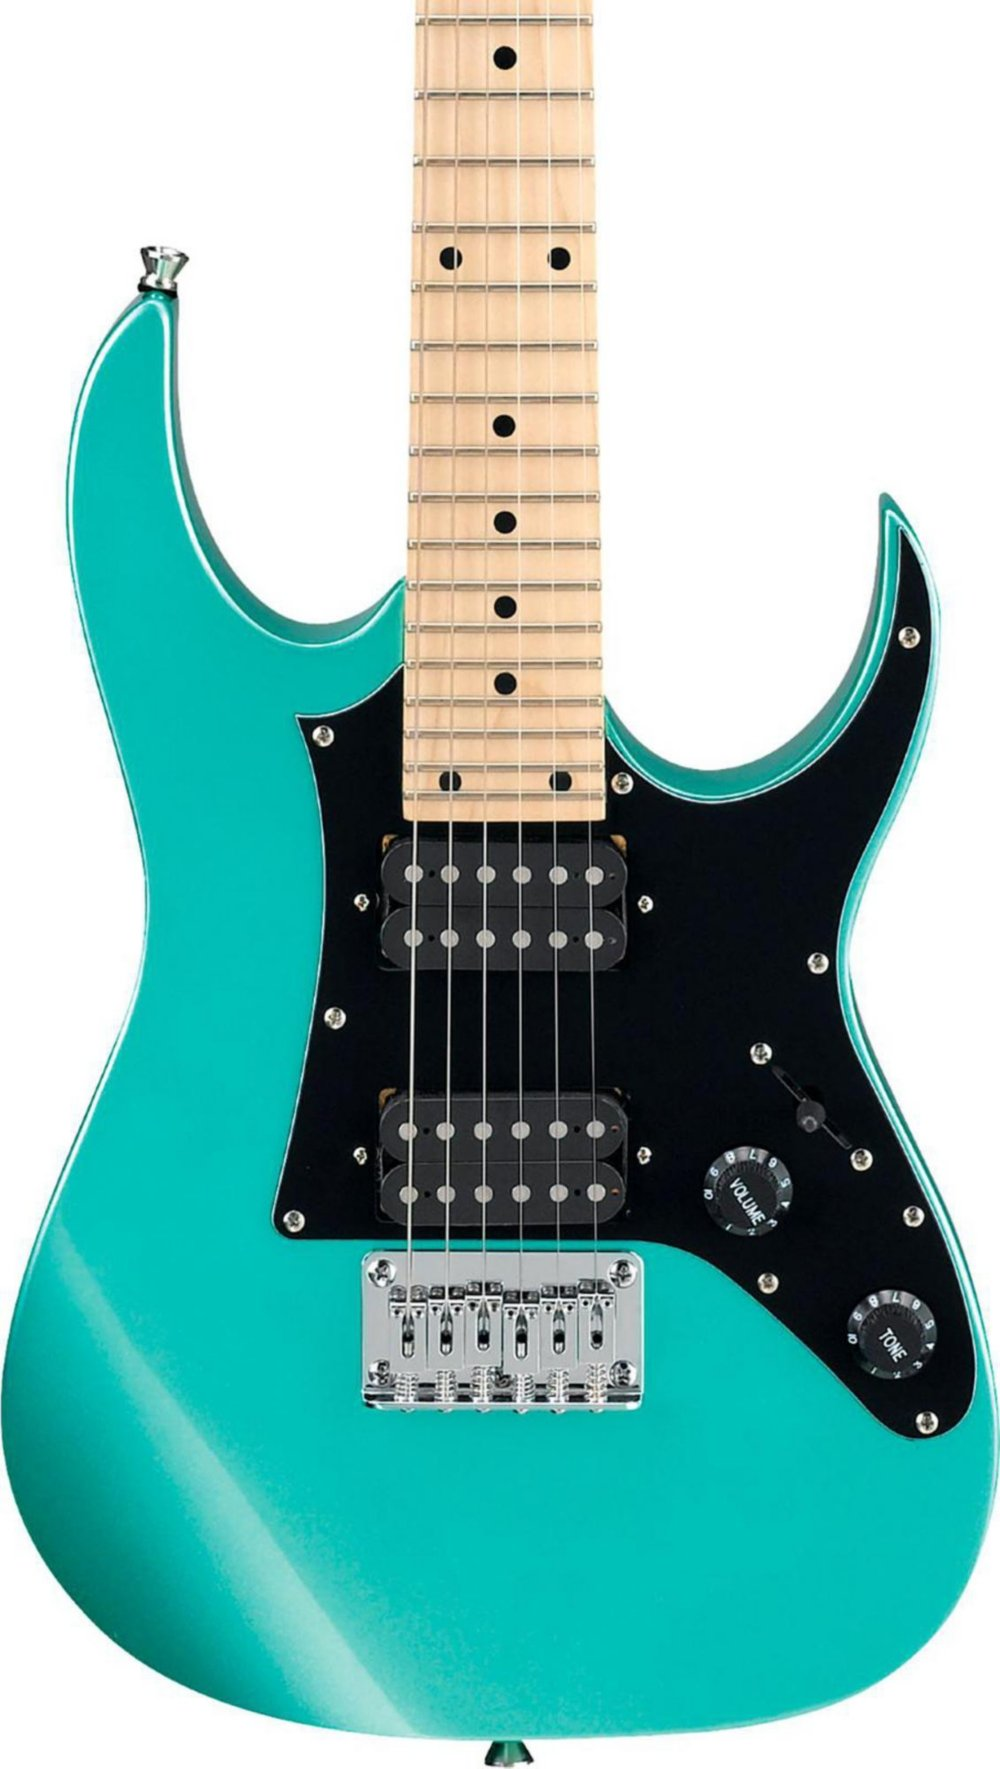 Ibanez GRGM 6 String Solid-Body Electric Guitar, Right, Metallic Light Green (GRGM21MMGN)